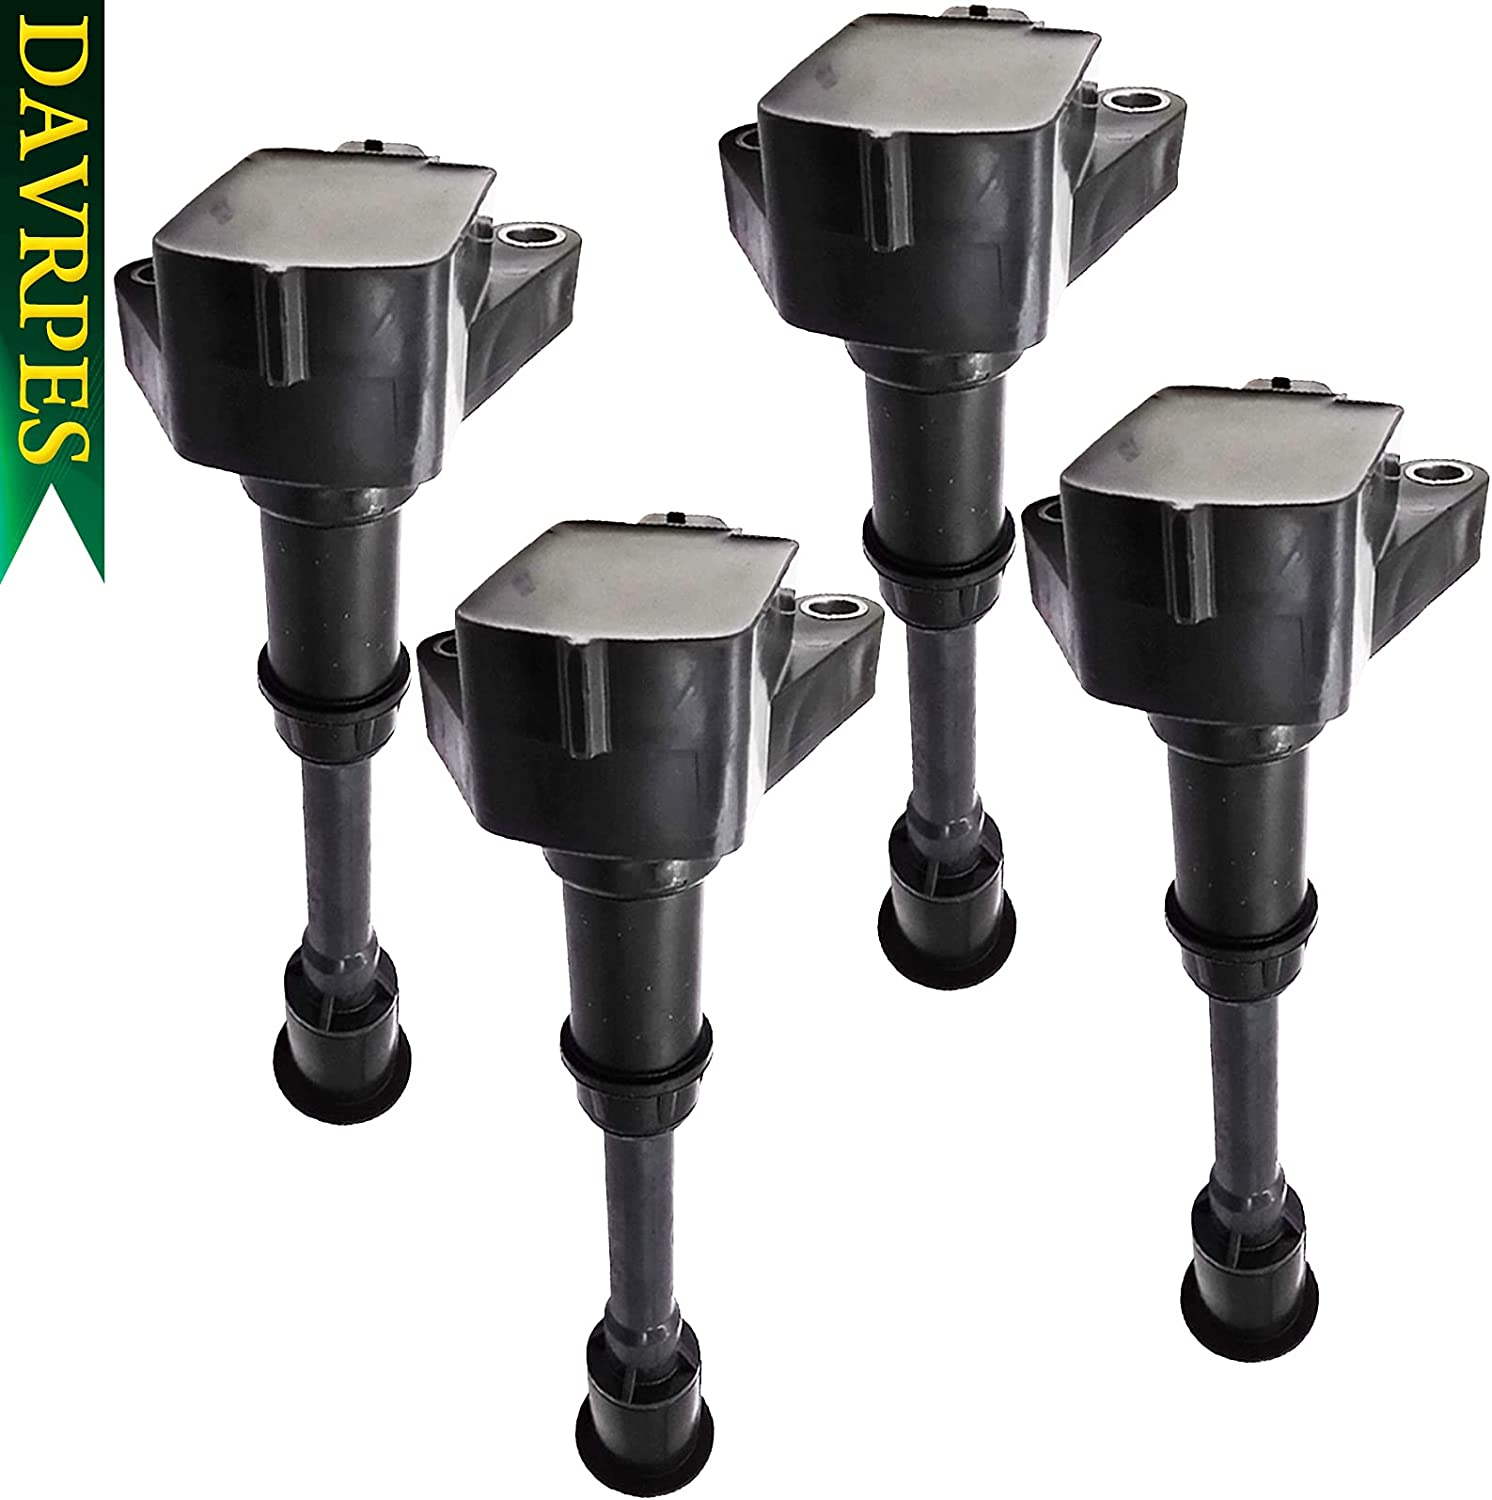 Ranking integrated 1st place DAVRPES 4Pcs Direct Ignition Coil Clearance SALE! Limited time! Escape For Ford Fie Compatible